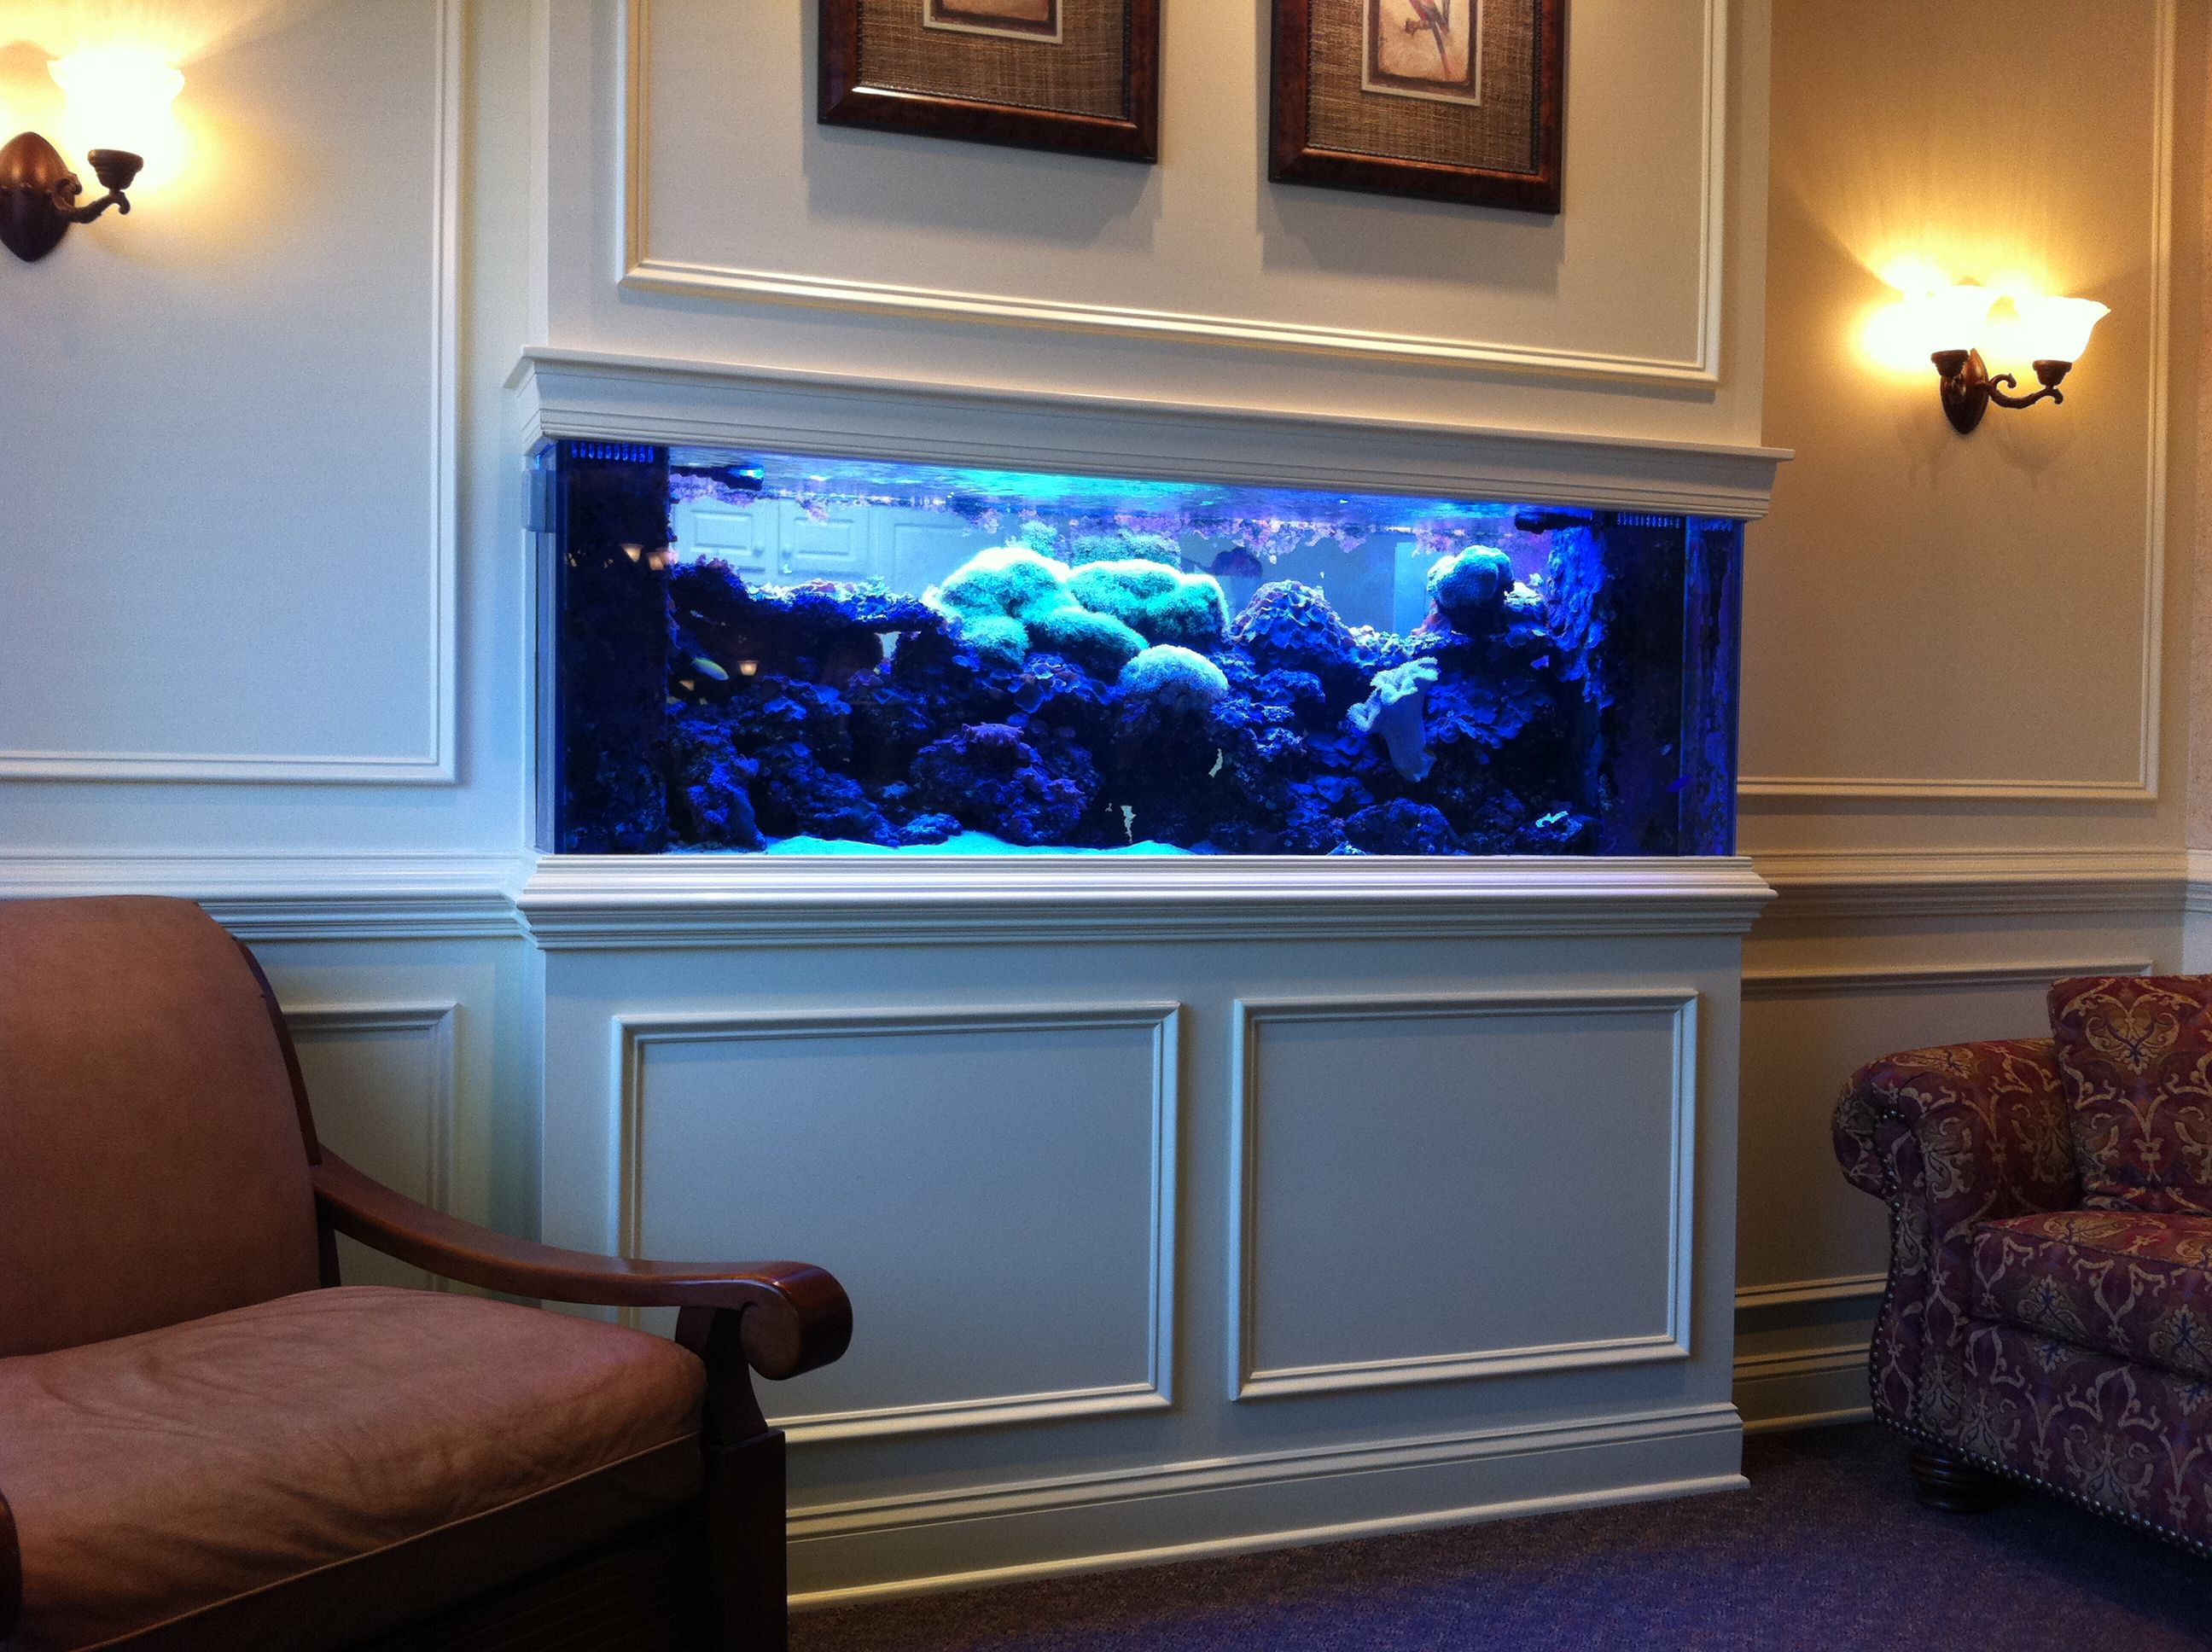 Fish aquarium for sale in karachi - Saltwater Aquarium Fish Google Search